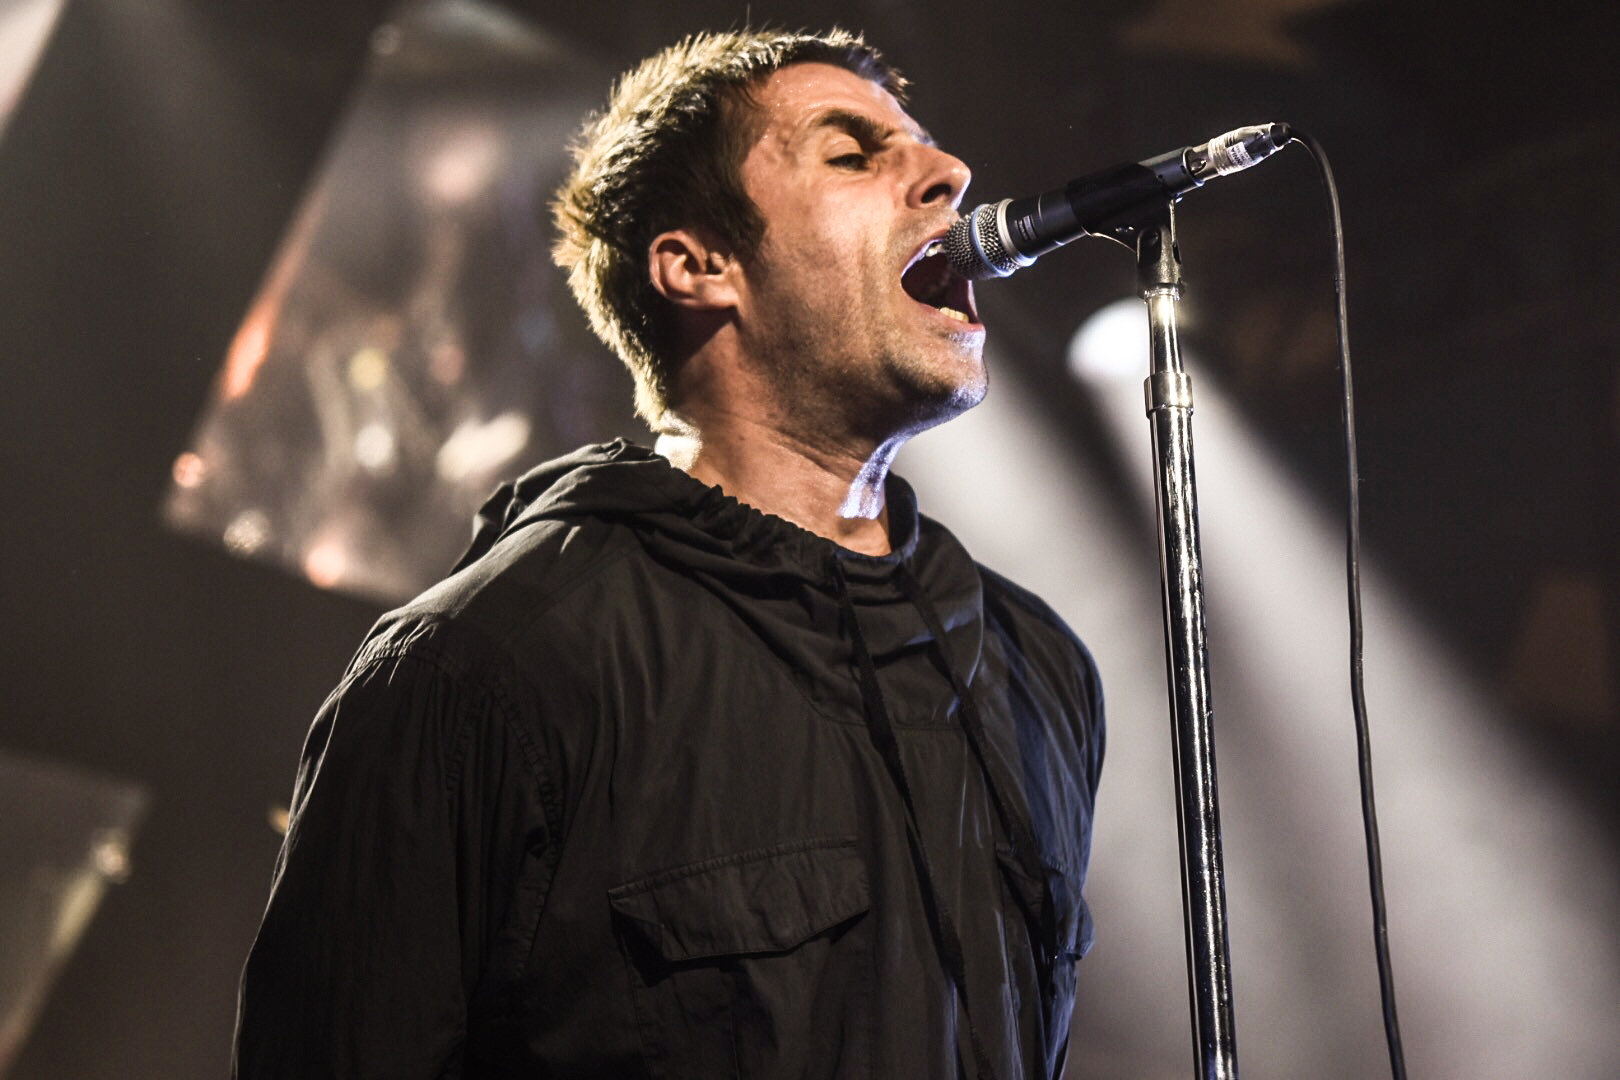 13 - Liam Gallagher performing to Sold Out Crowd at Glasgow's Barrowlands as part of As You Were Tour - 11-06-2017 - Pic By - Calum Buchan Photography - Copy.jpg